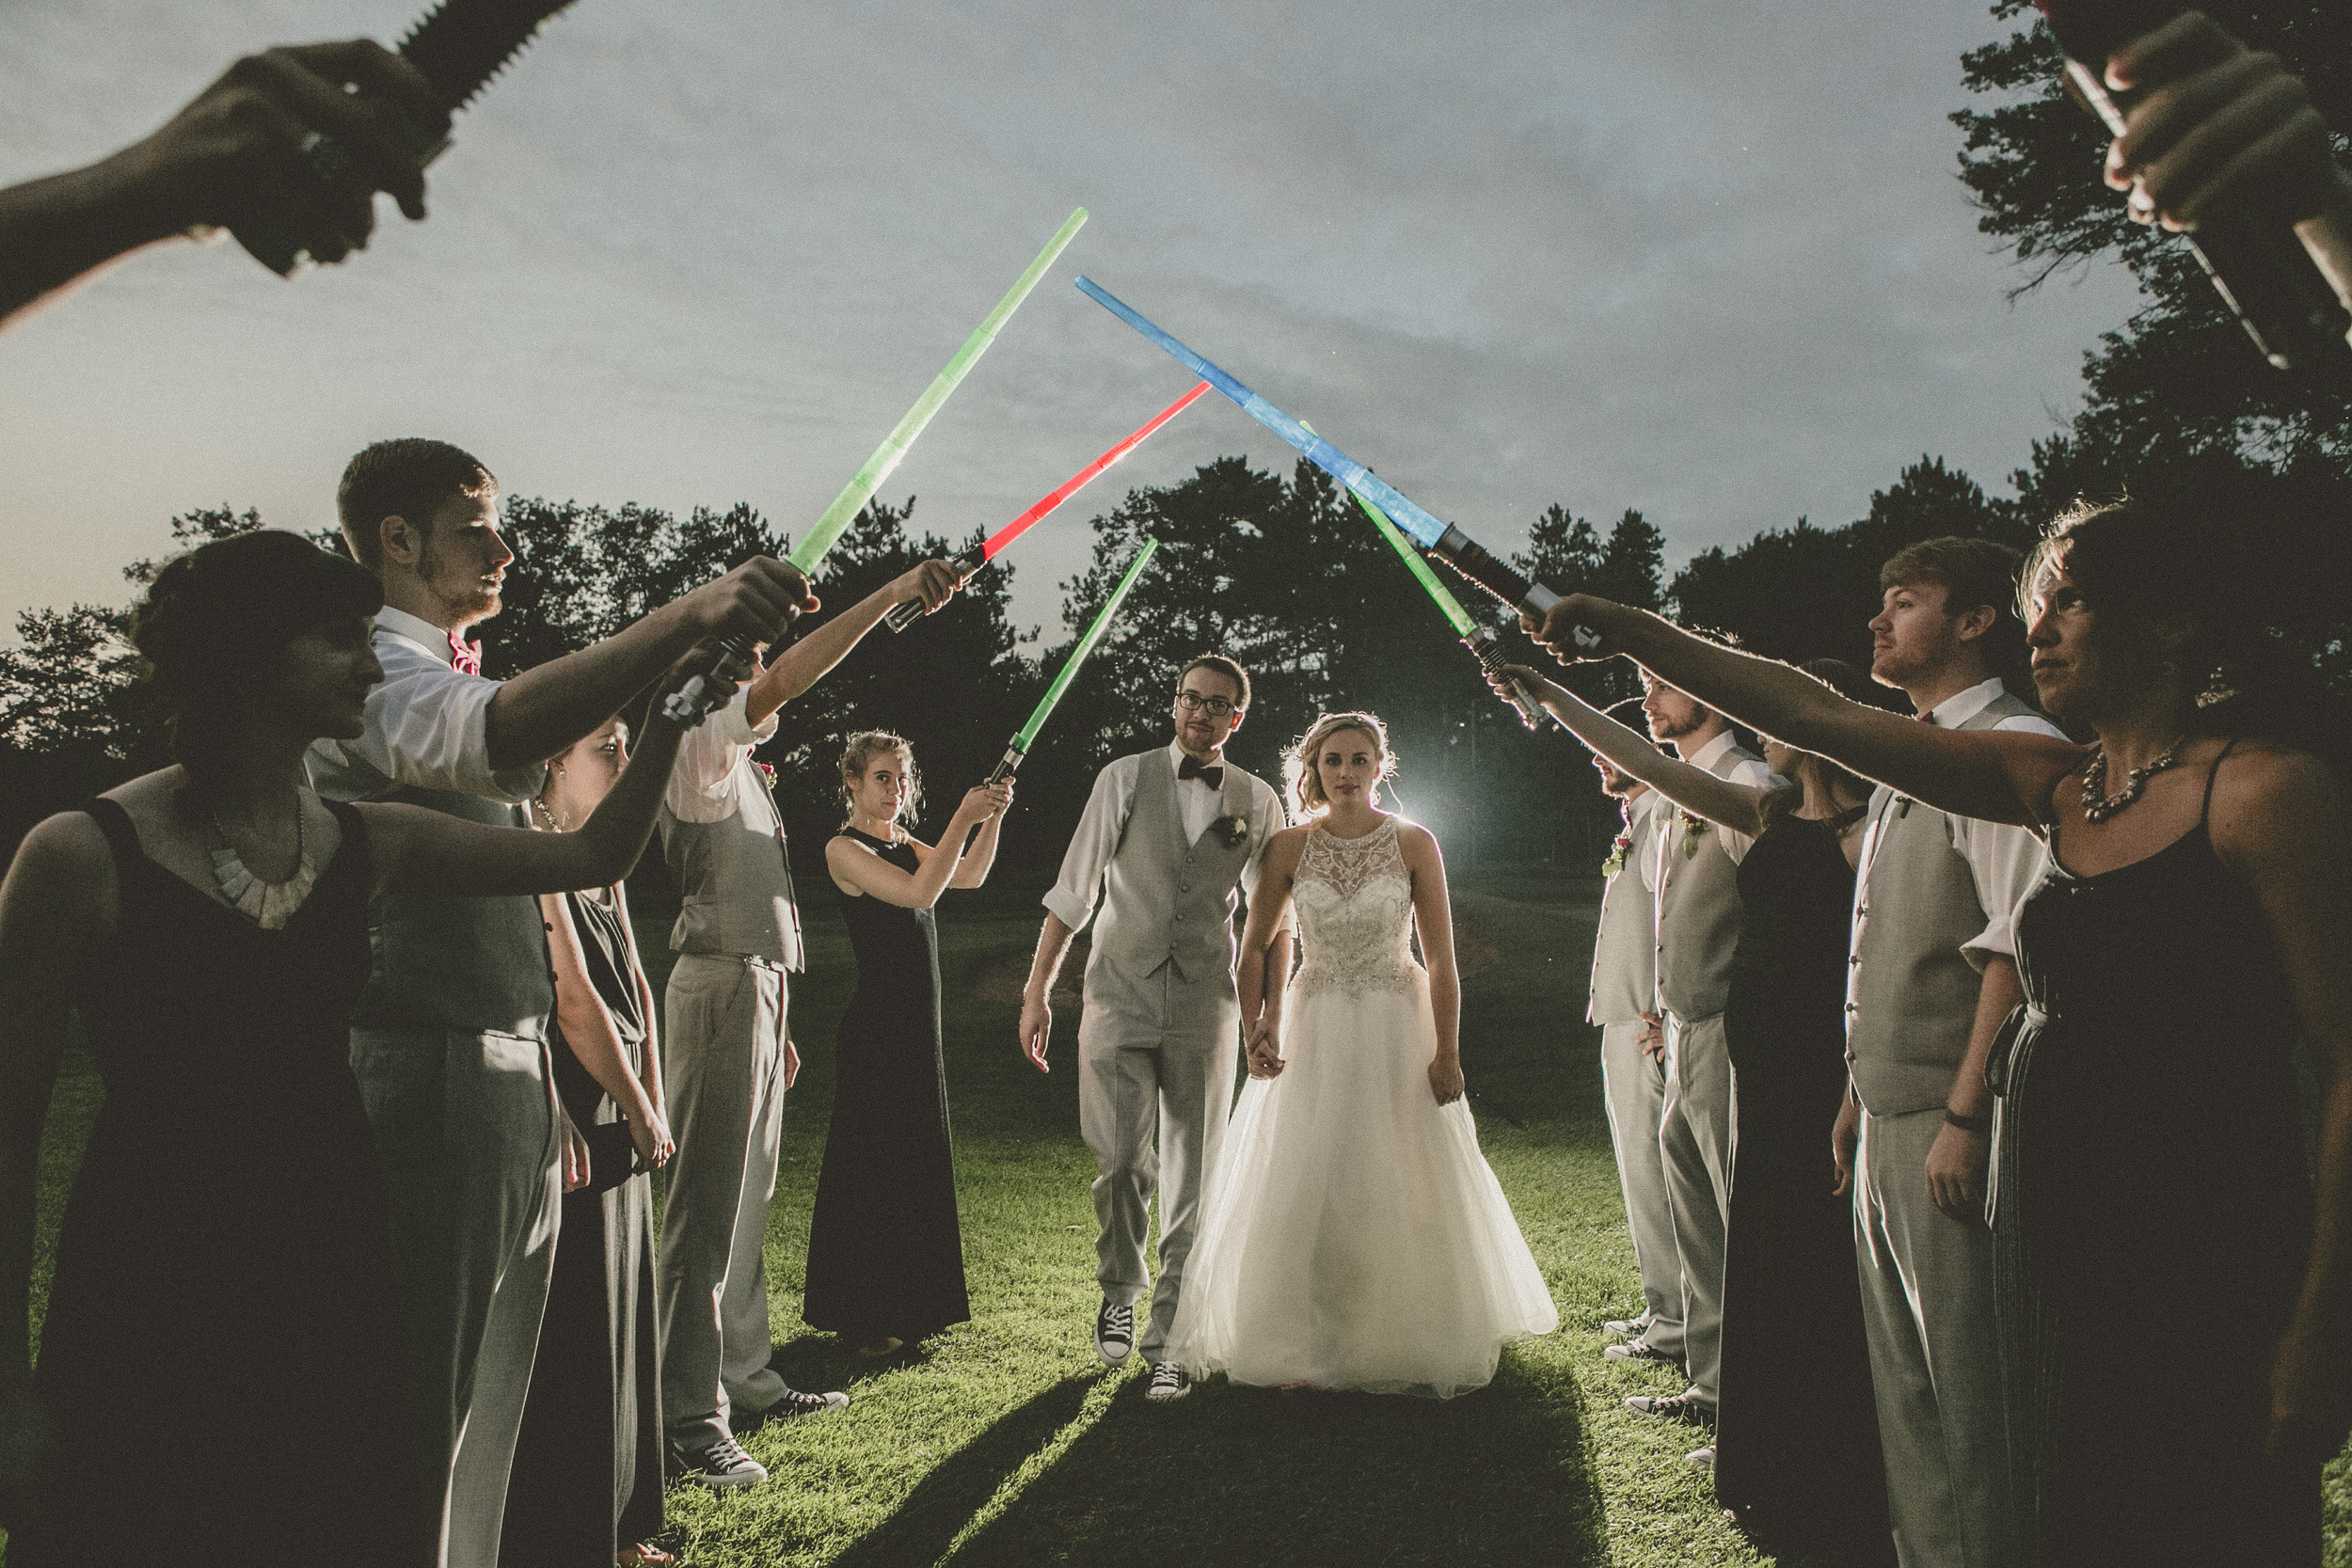 a classic Wisconsin backyard wedding - star wars wedding